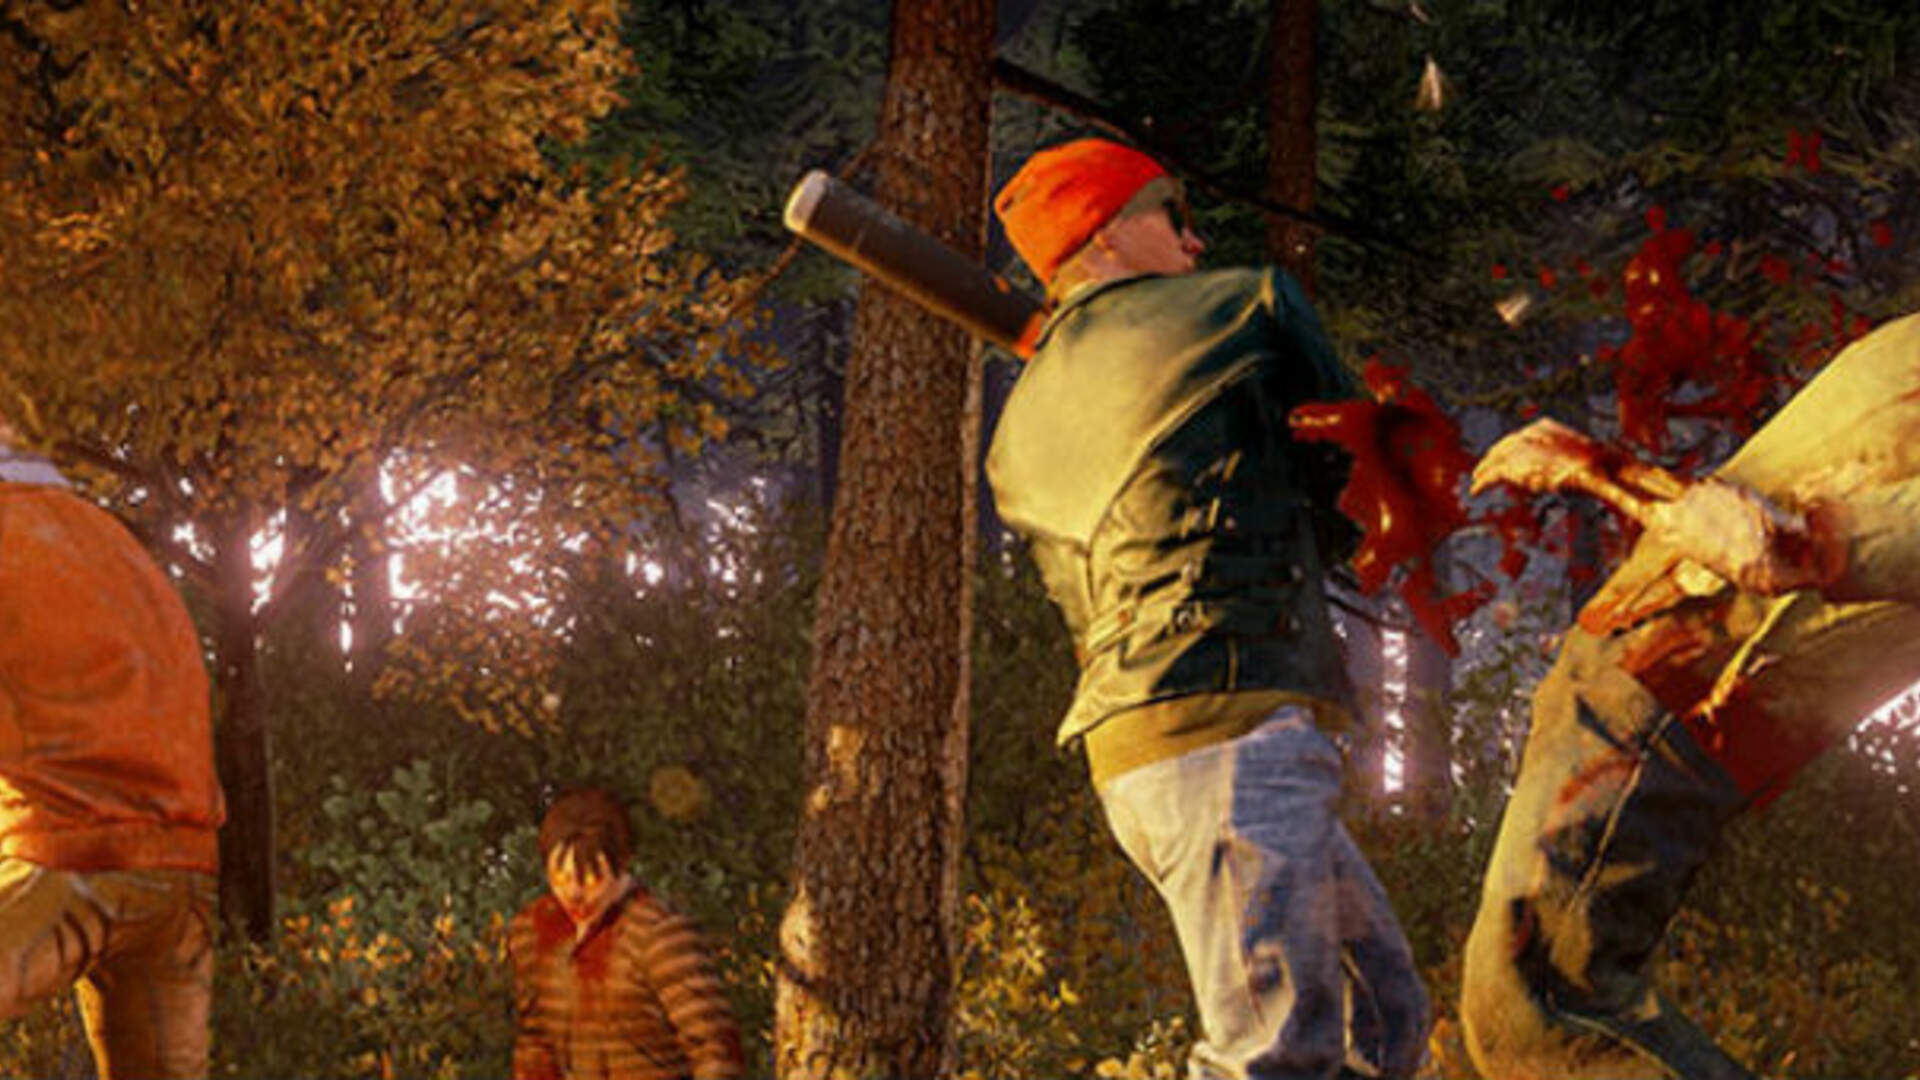 State of Decay 2 Has a Whole Lot of Zombie-Smashing Going On